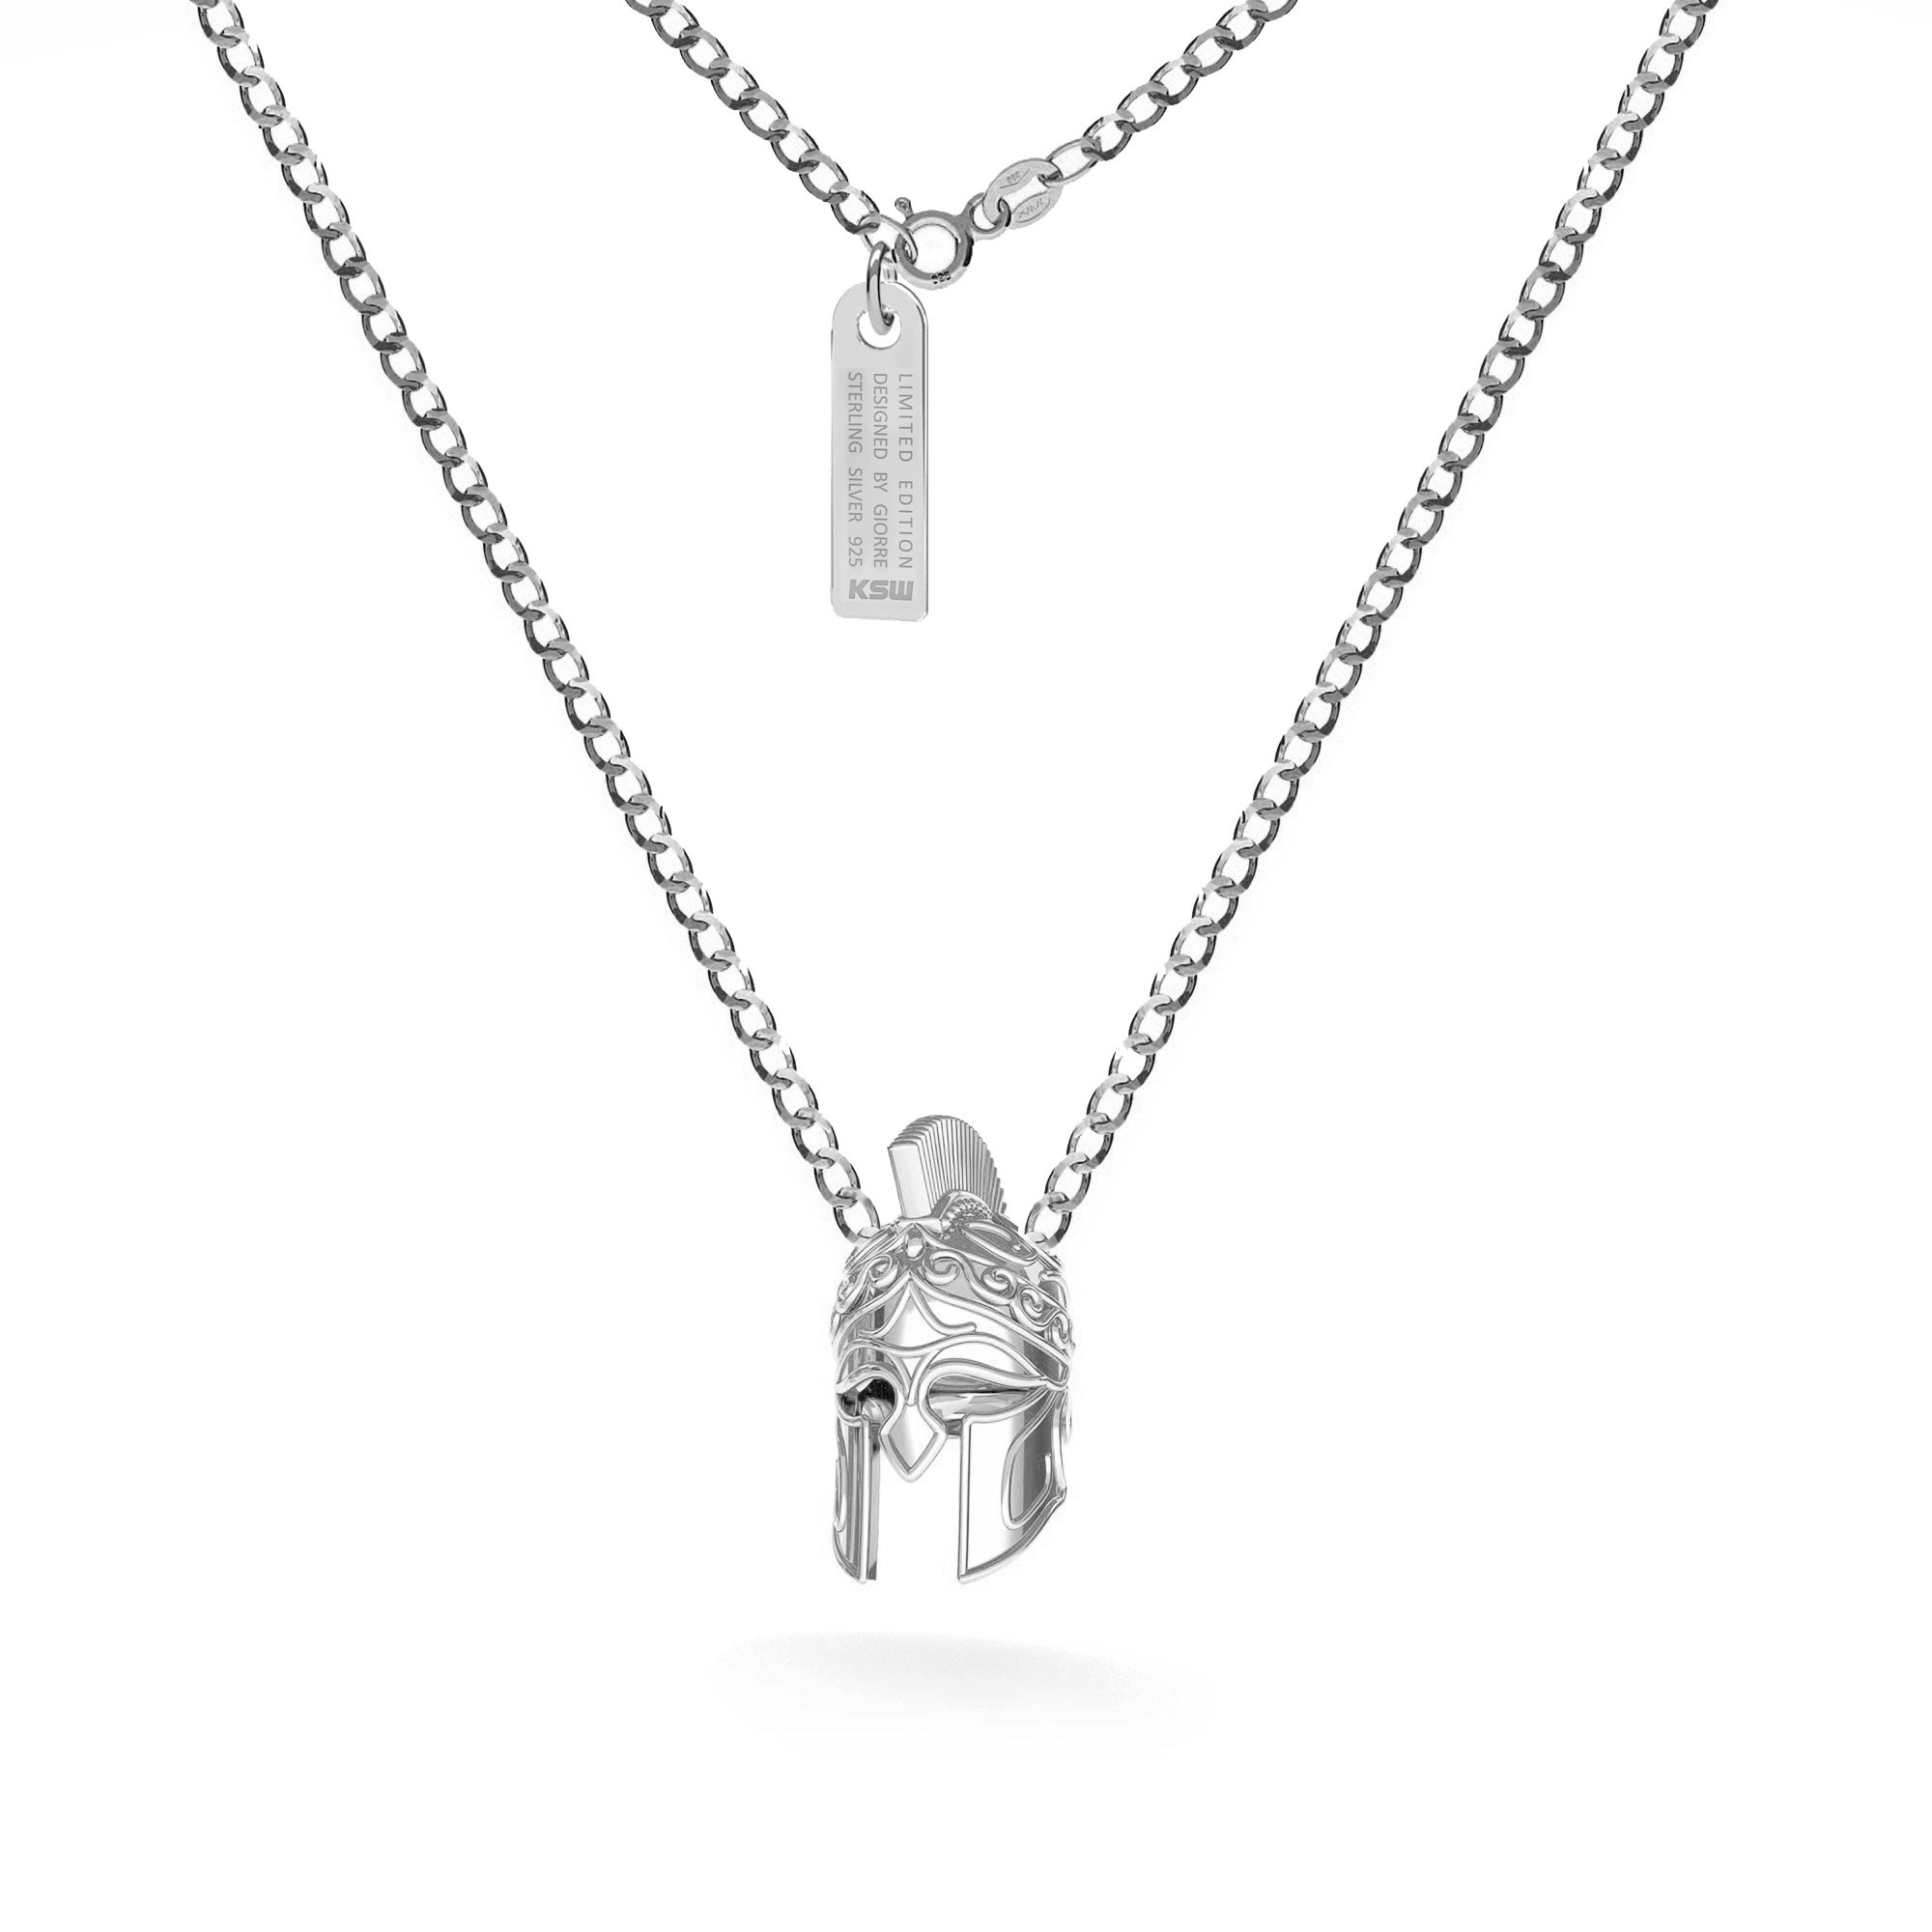 Silver spartan necklace, curb chain, silver 925